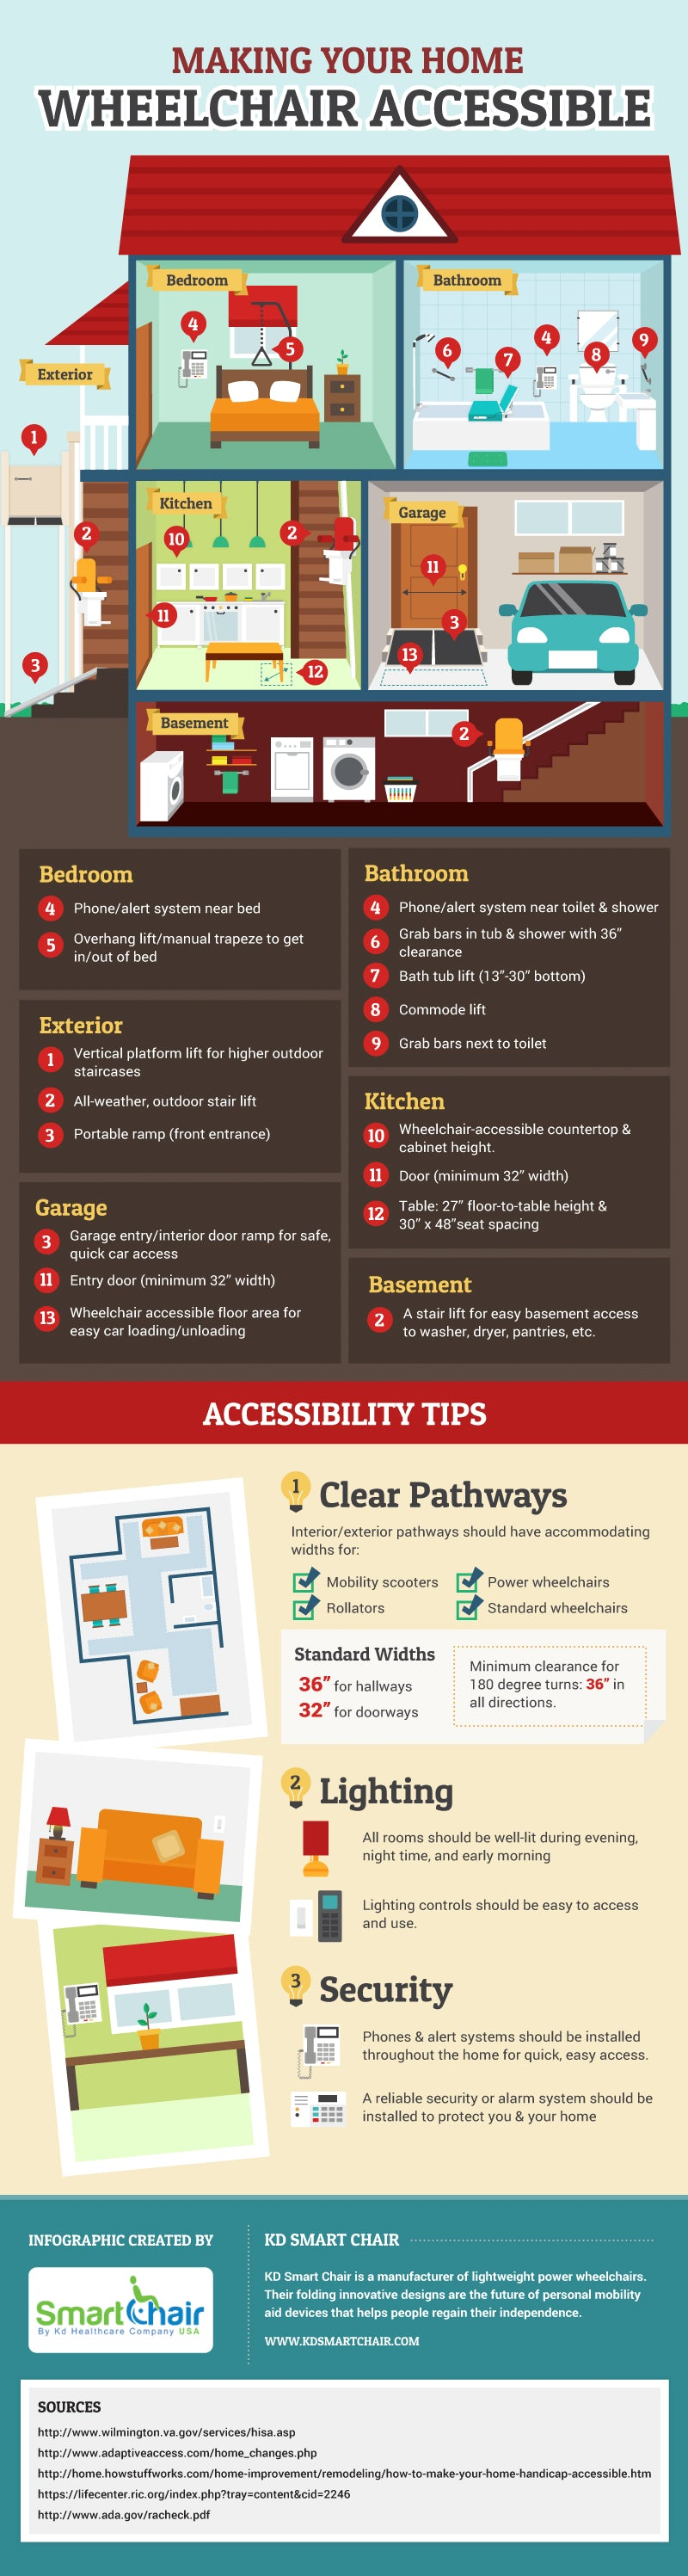 Making Your Home Wheelchair Accessible Infographic Kd